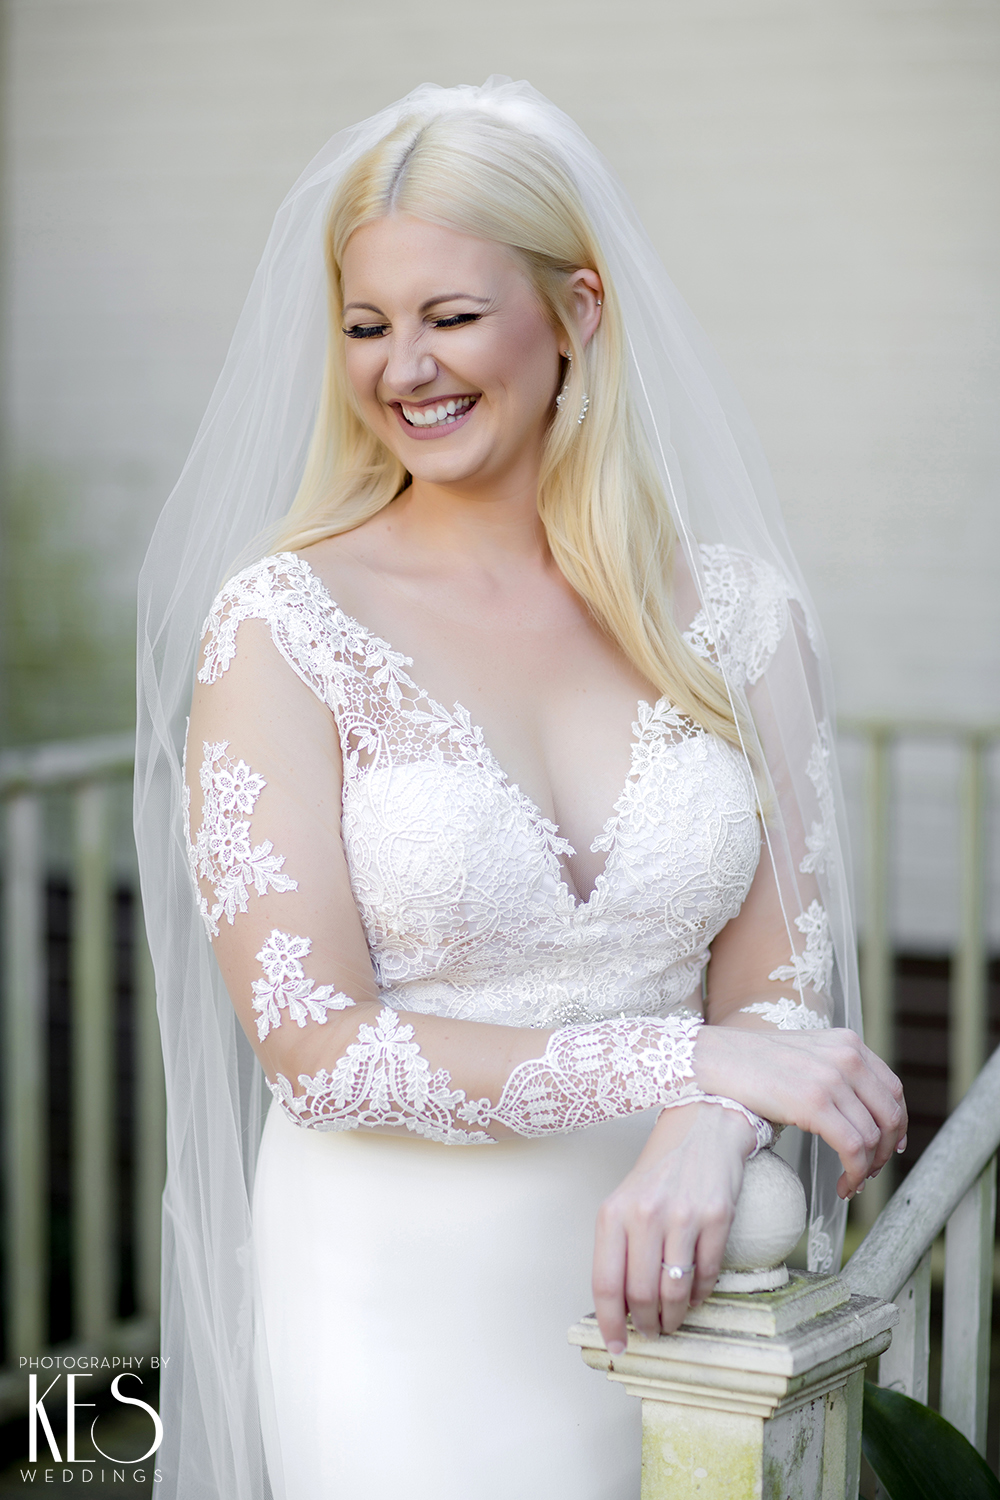 Marlsgate_Bridals_KES_Weddings_5.JPG